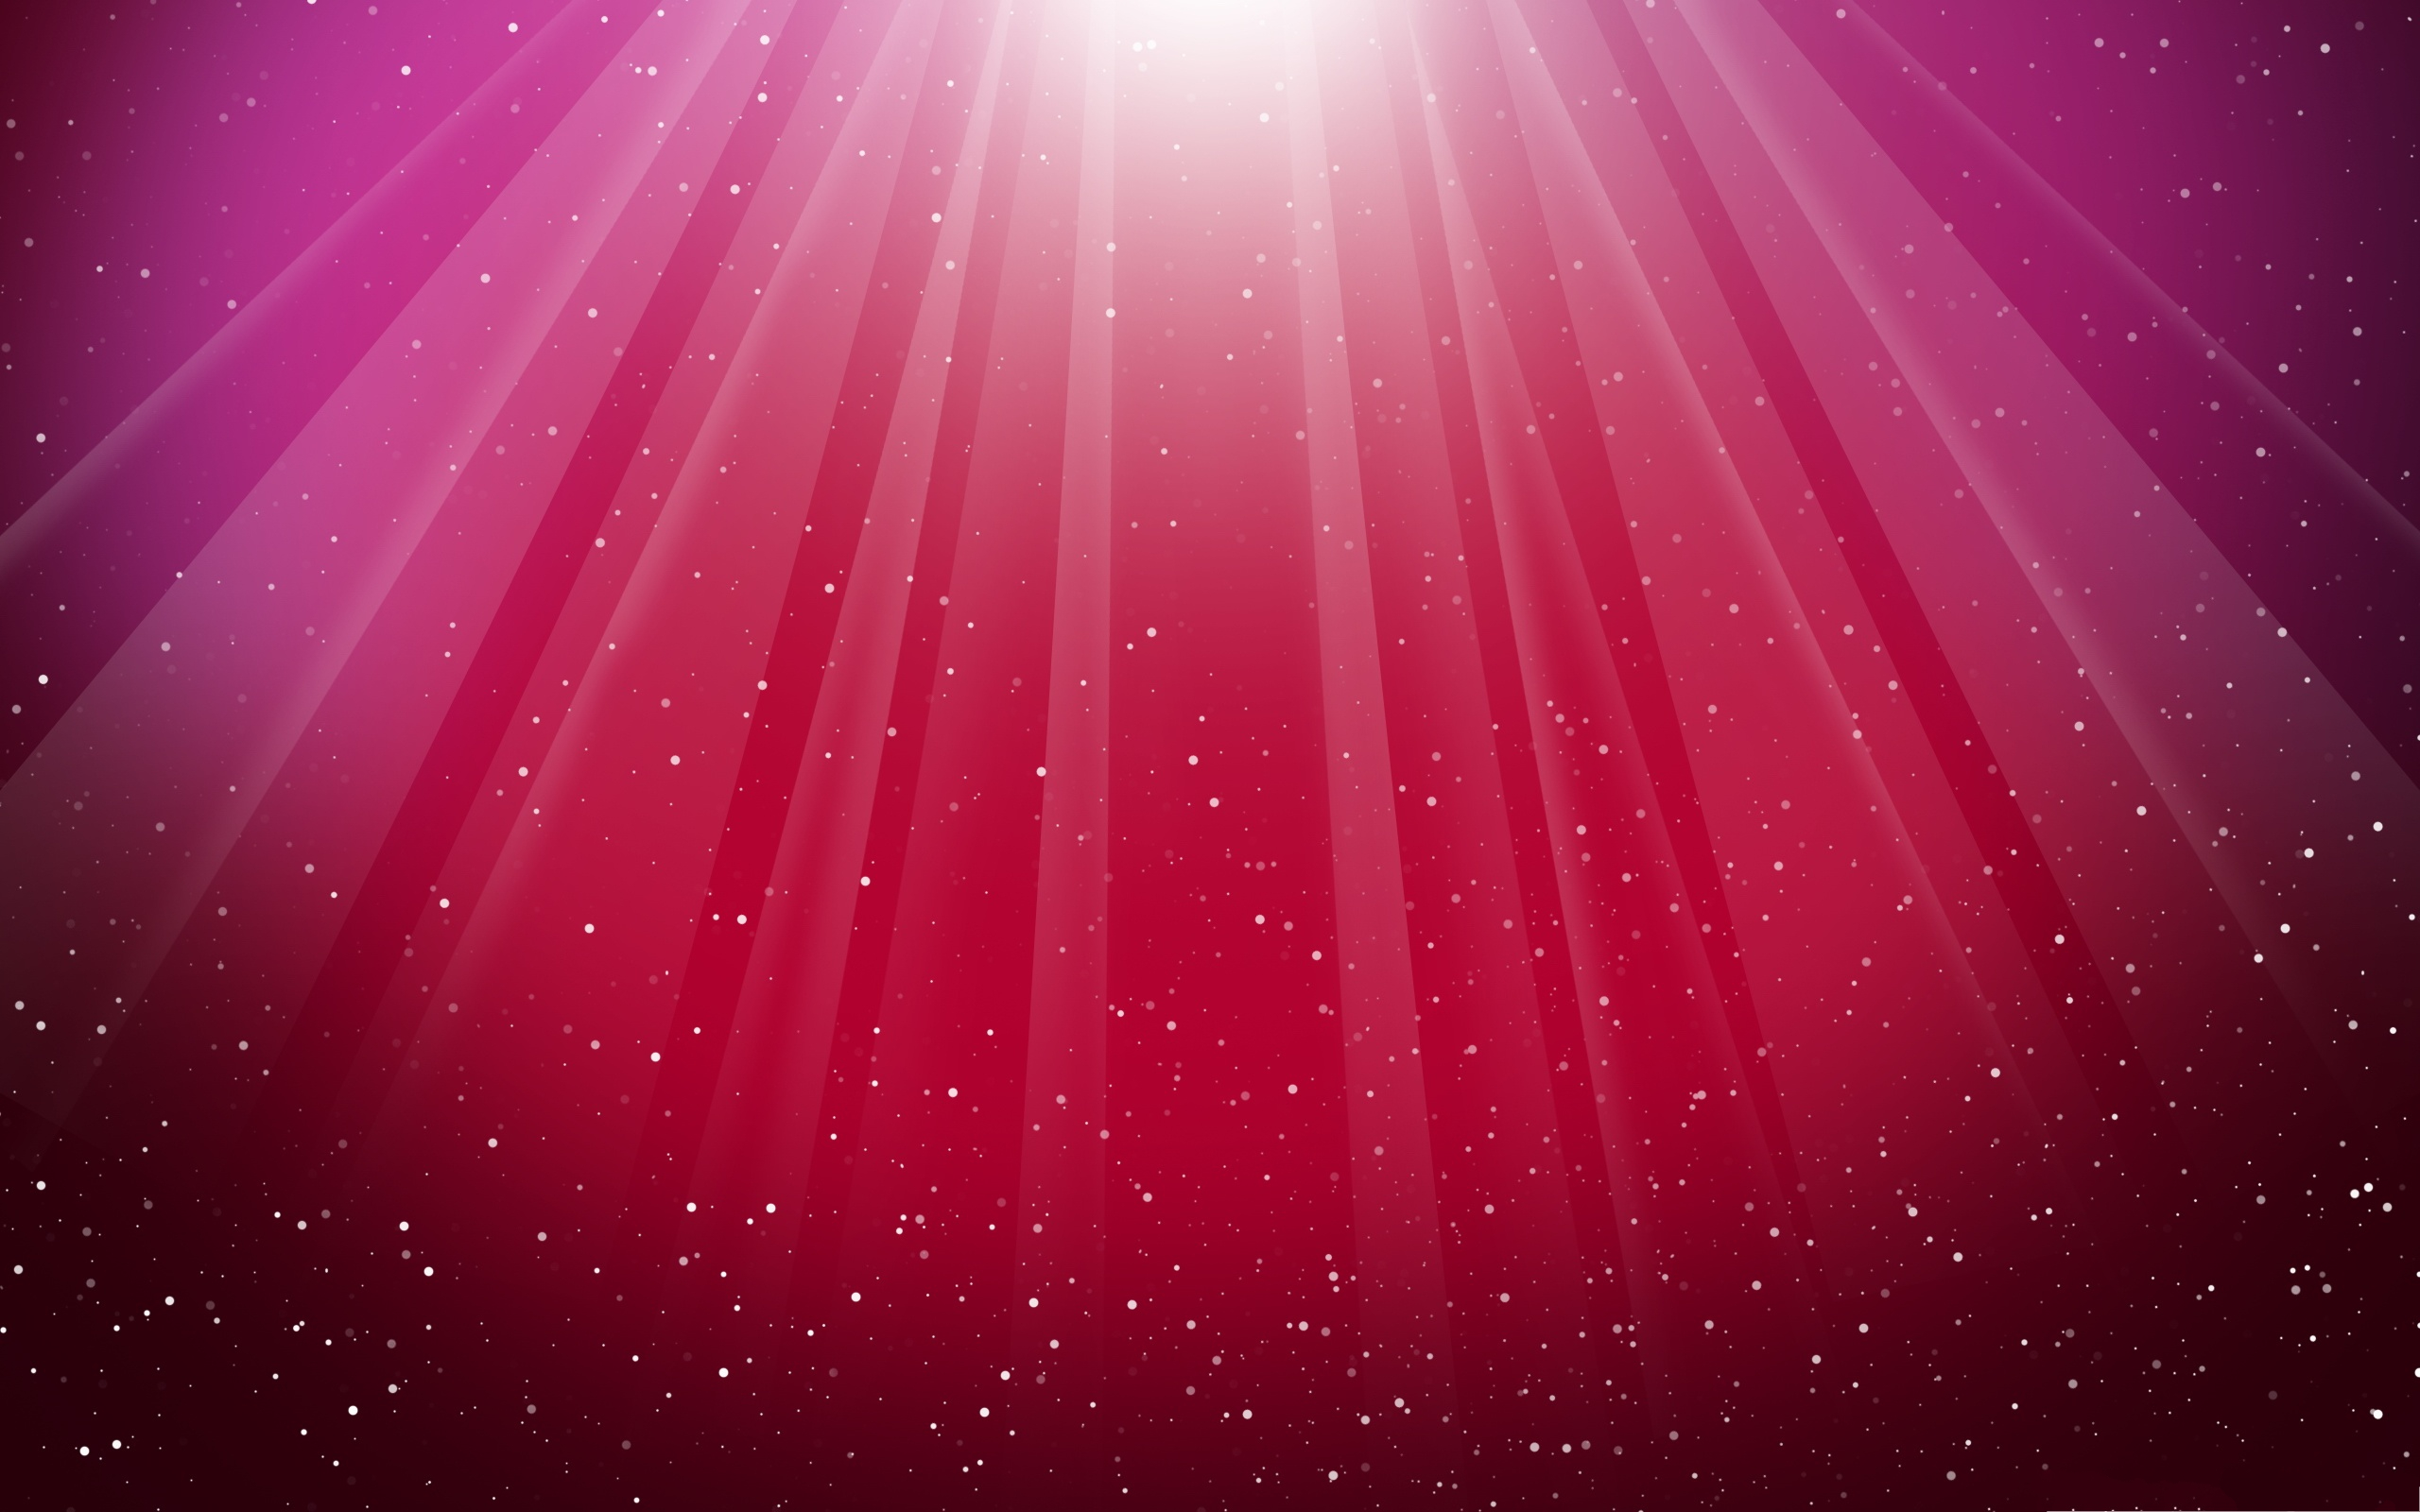 High Quality Wide Wallpaper - Aurora Burst Red, Sweet and Romantic Background 2560X1600 free ...